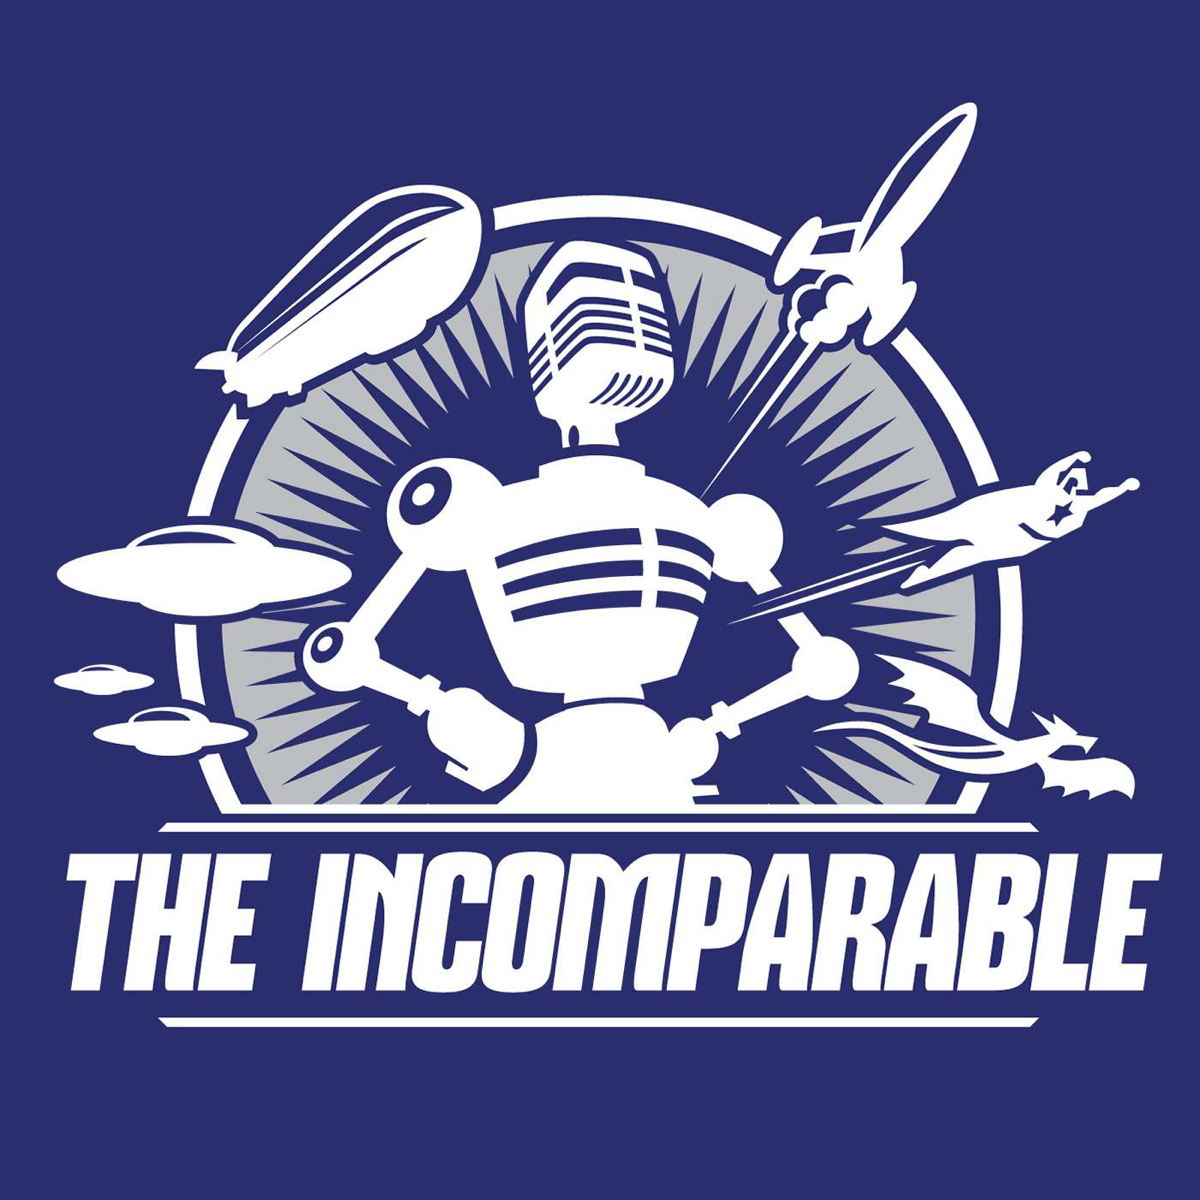 Top 12 episodes | Best episodes of The Incomparable